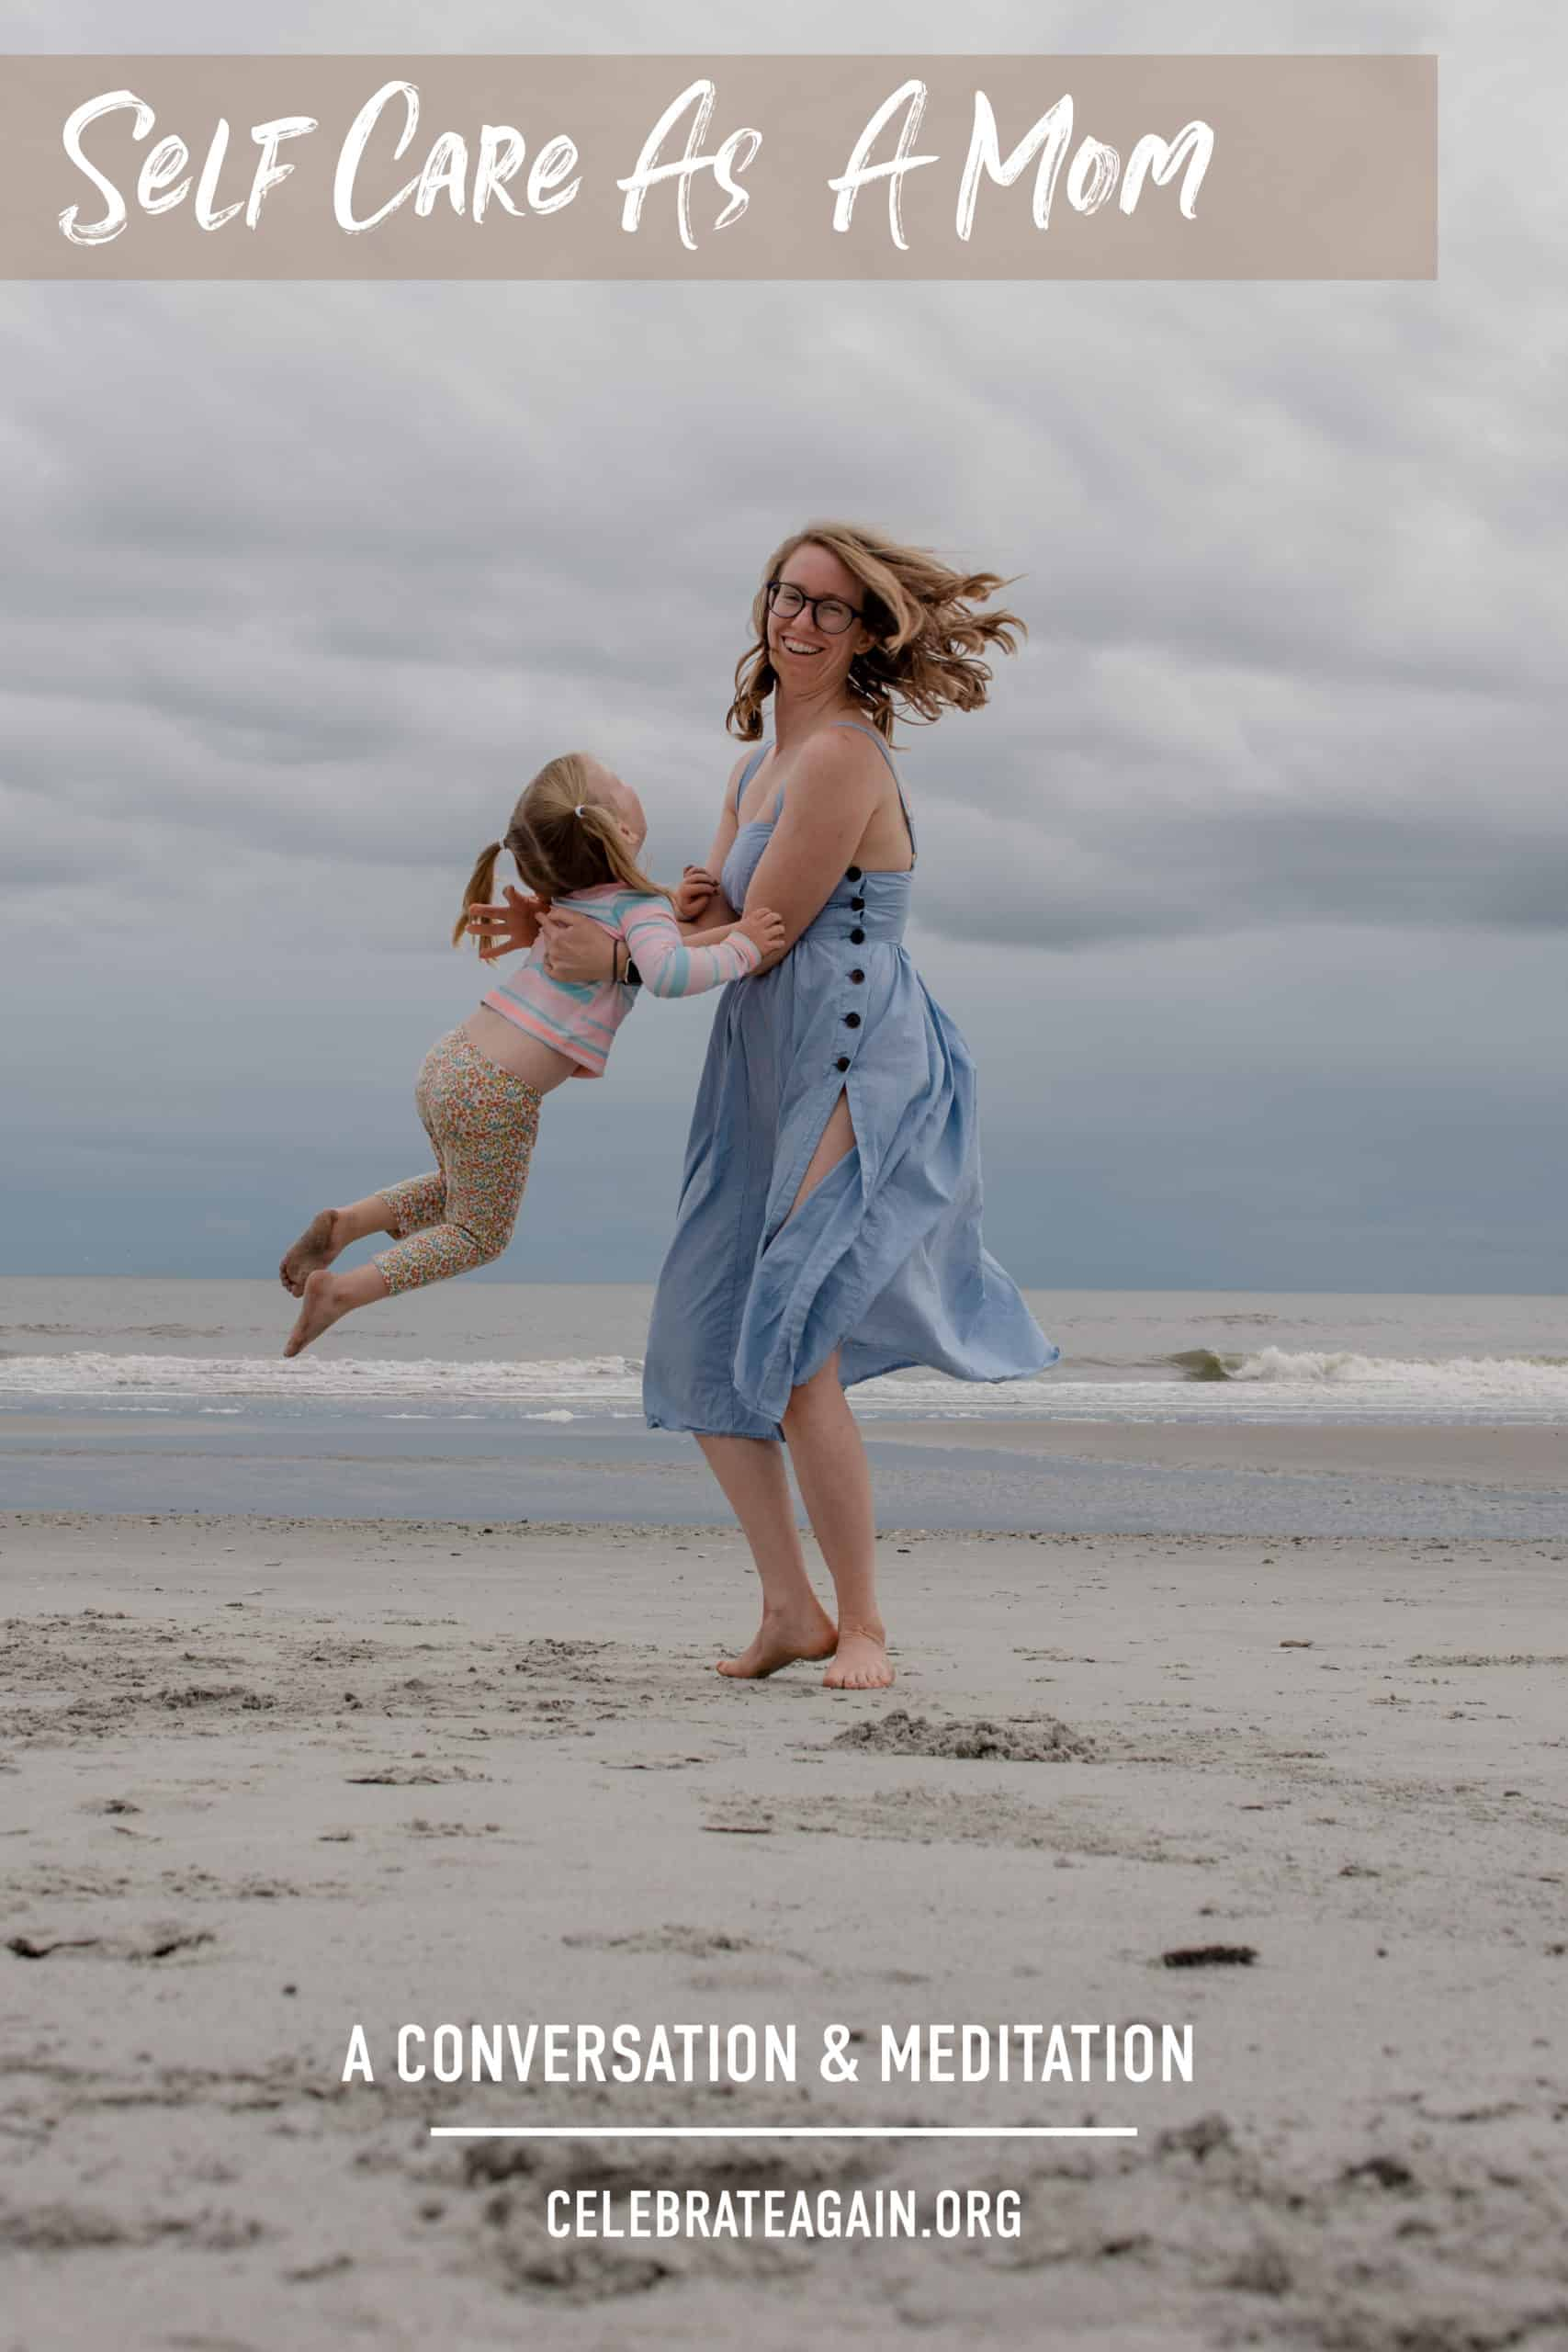 """Self care as a mom"" a mom spinning her child by the beach"